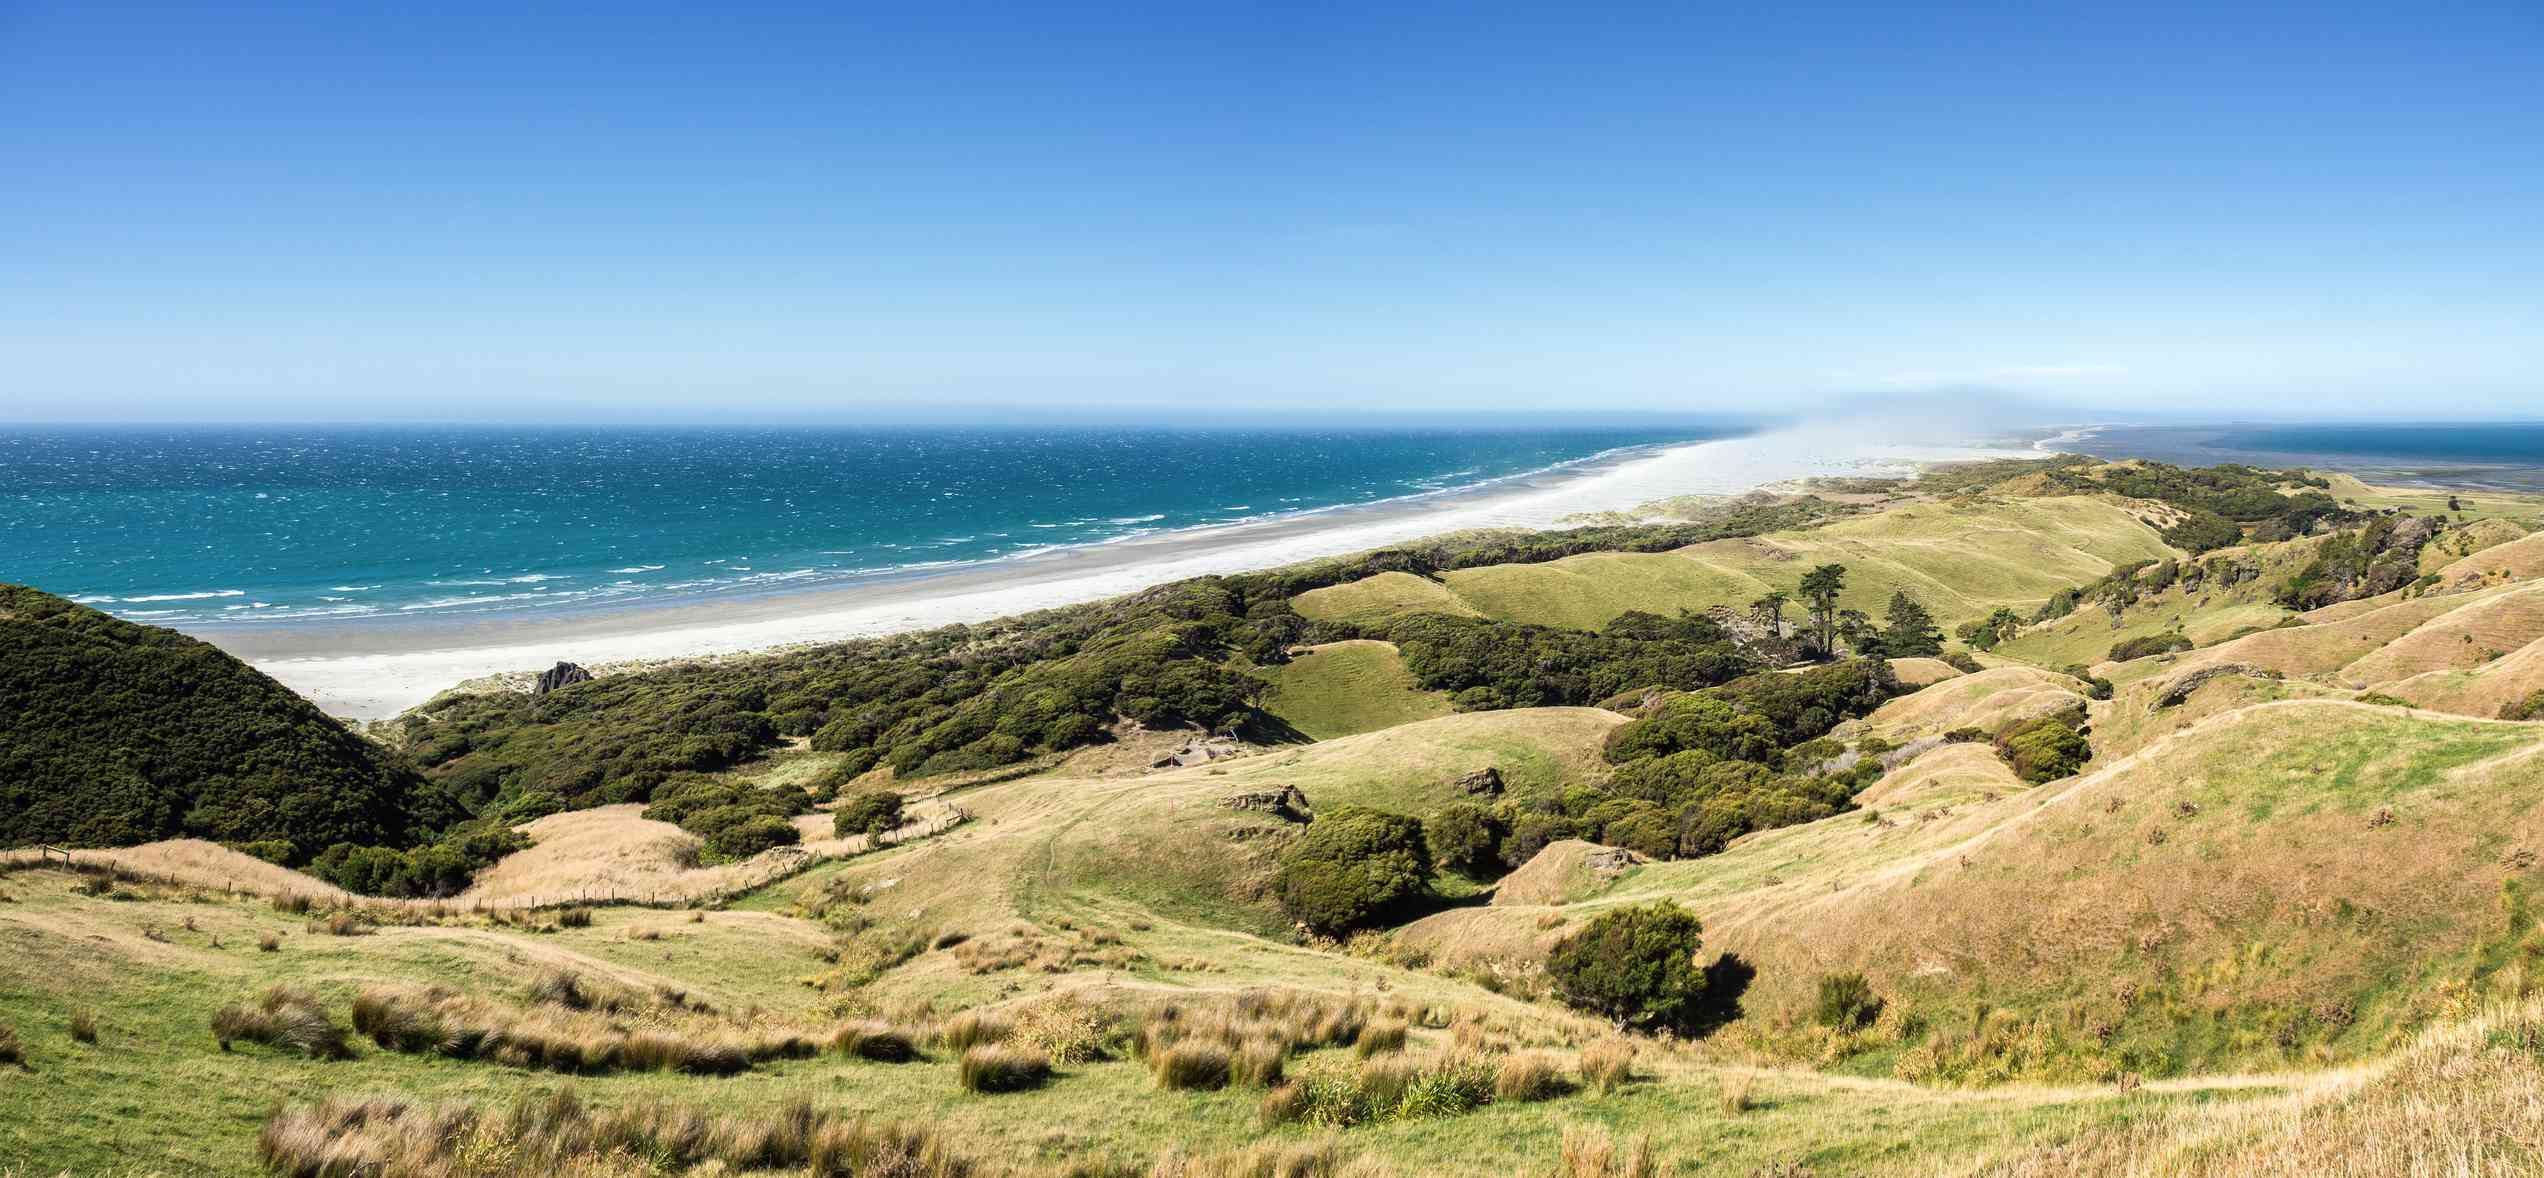 grassy hills and long whitesand beach with sea beyond